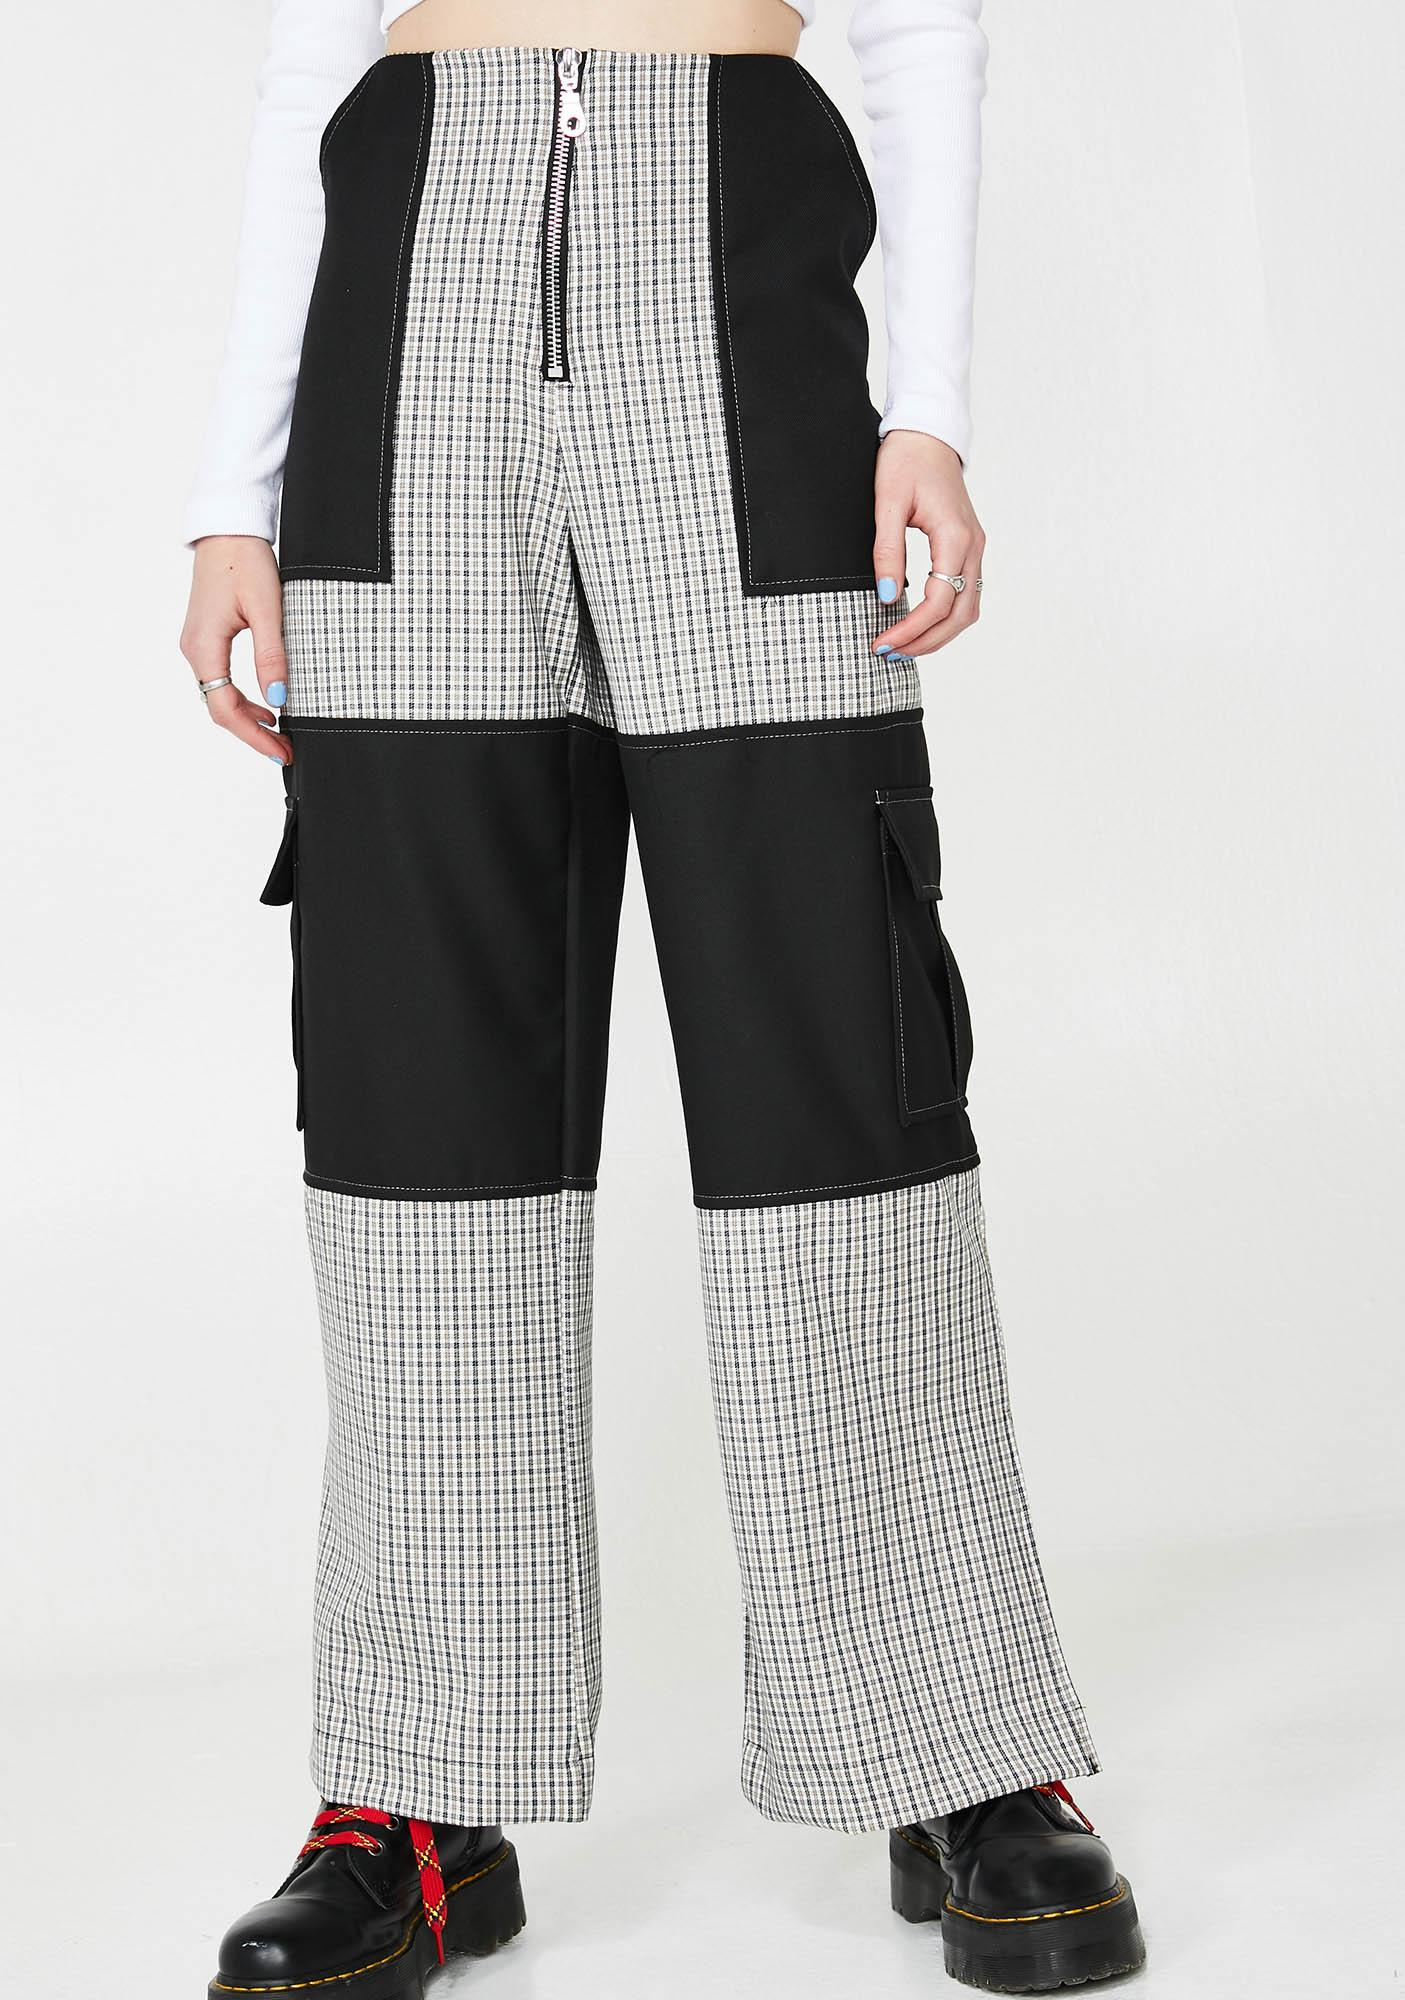 The Ragged Priest Trade Pants